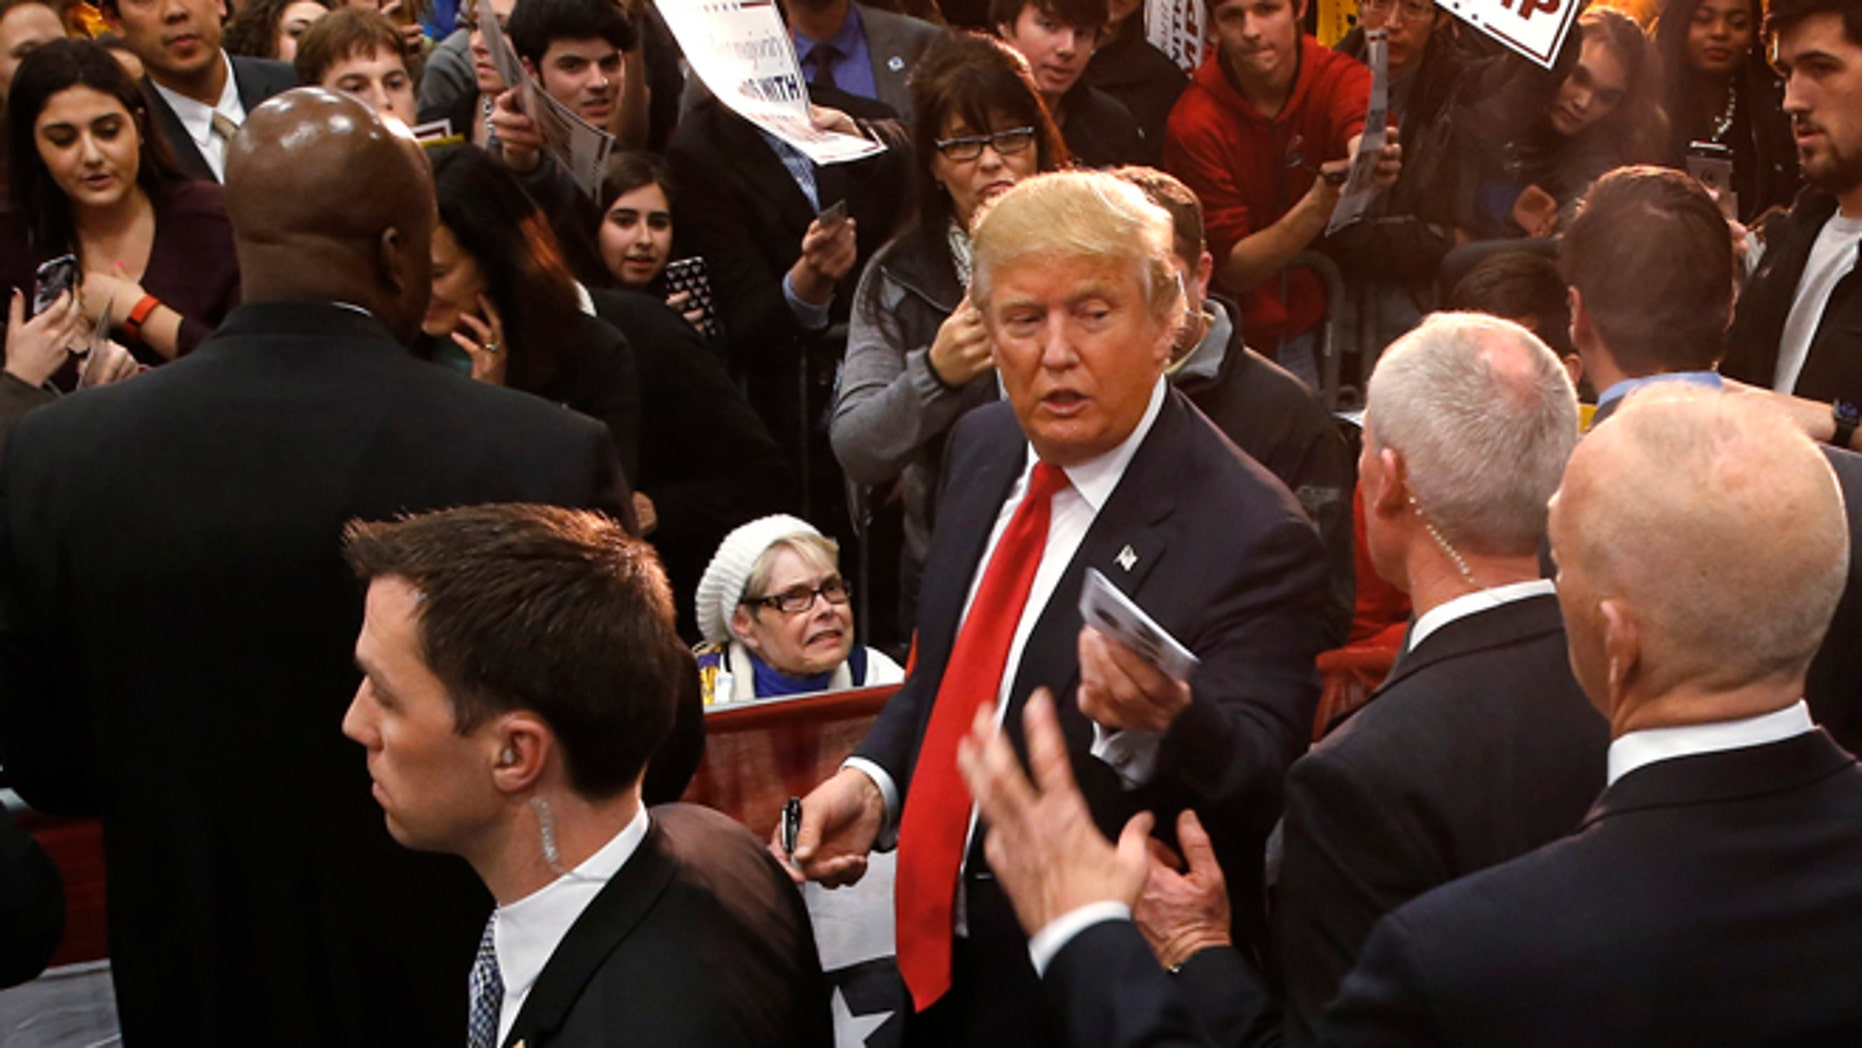 Republican presidential candidate Donald Trump hands a memento to staff during a campaign event at the University of Iowa Field House, Tuesday, Jan. 26, 2016 in Iowa City, Iowa. (AP Photo/Paul Sancya)